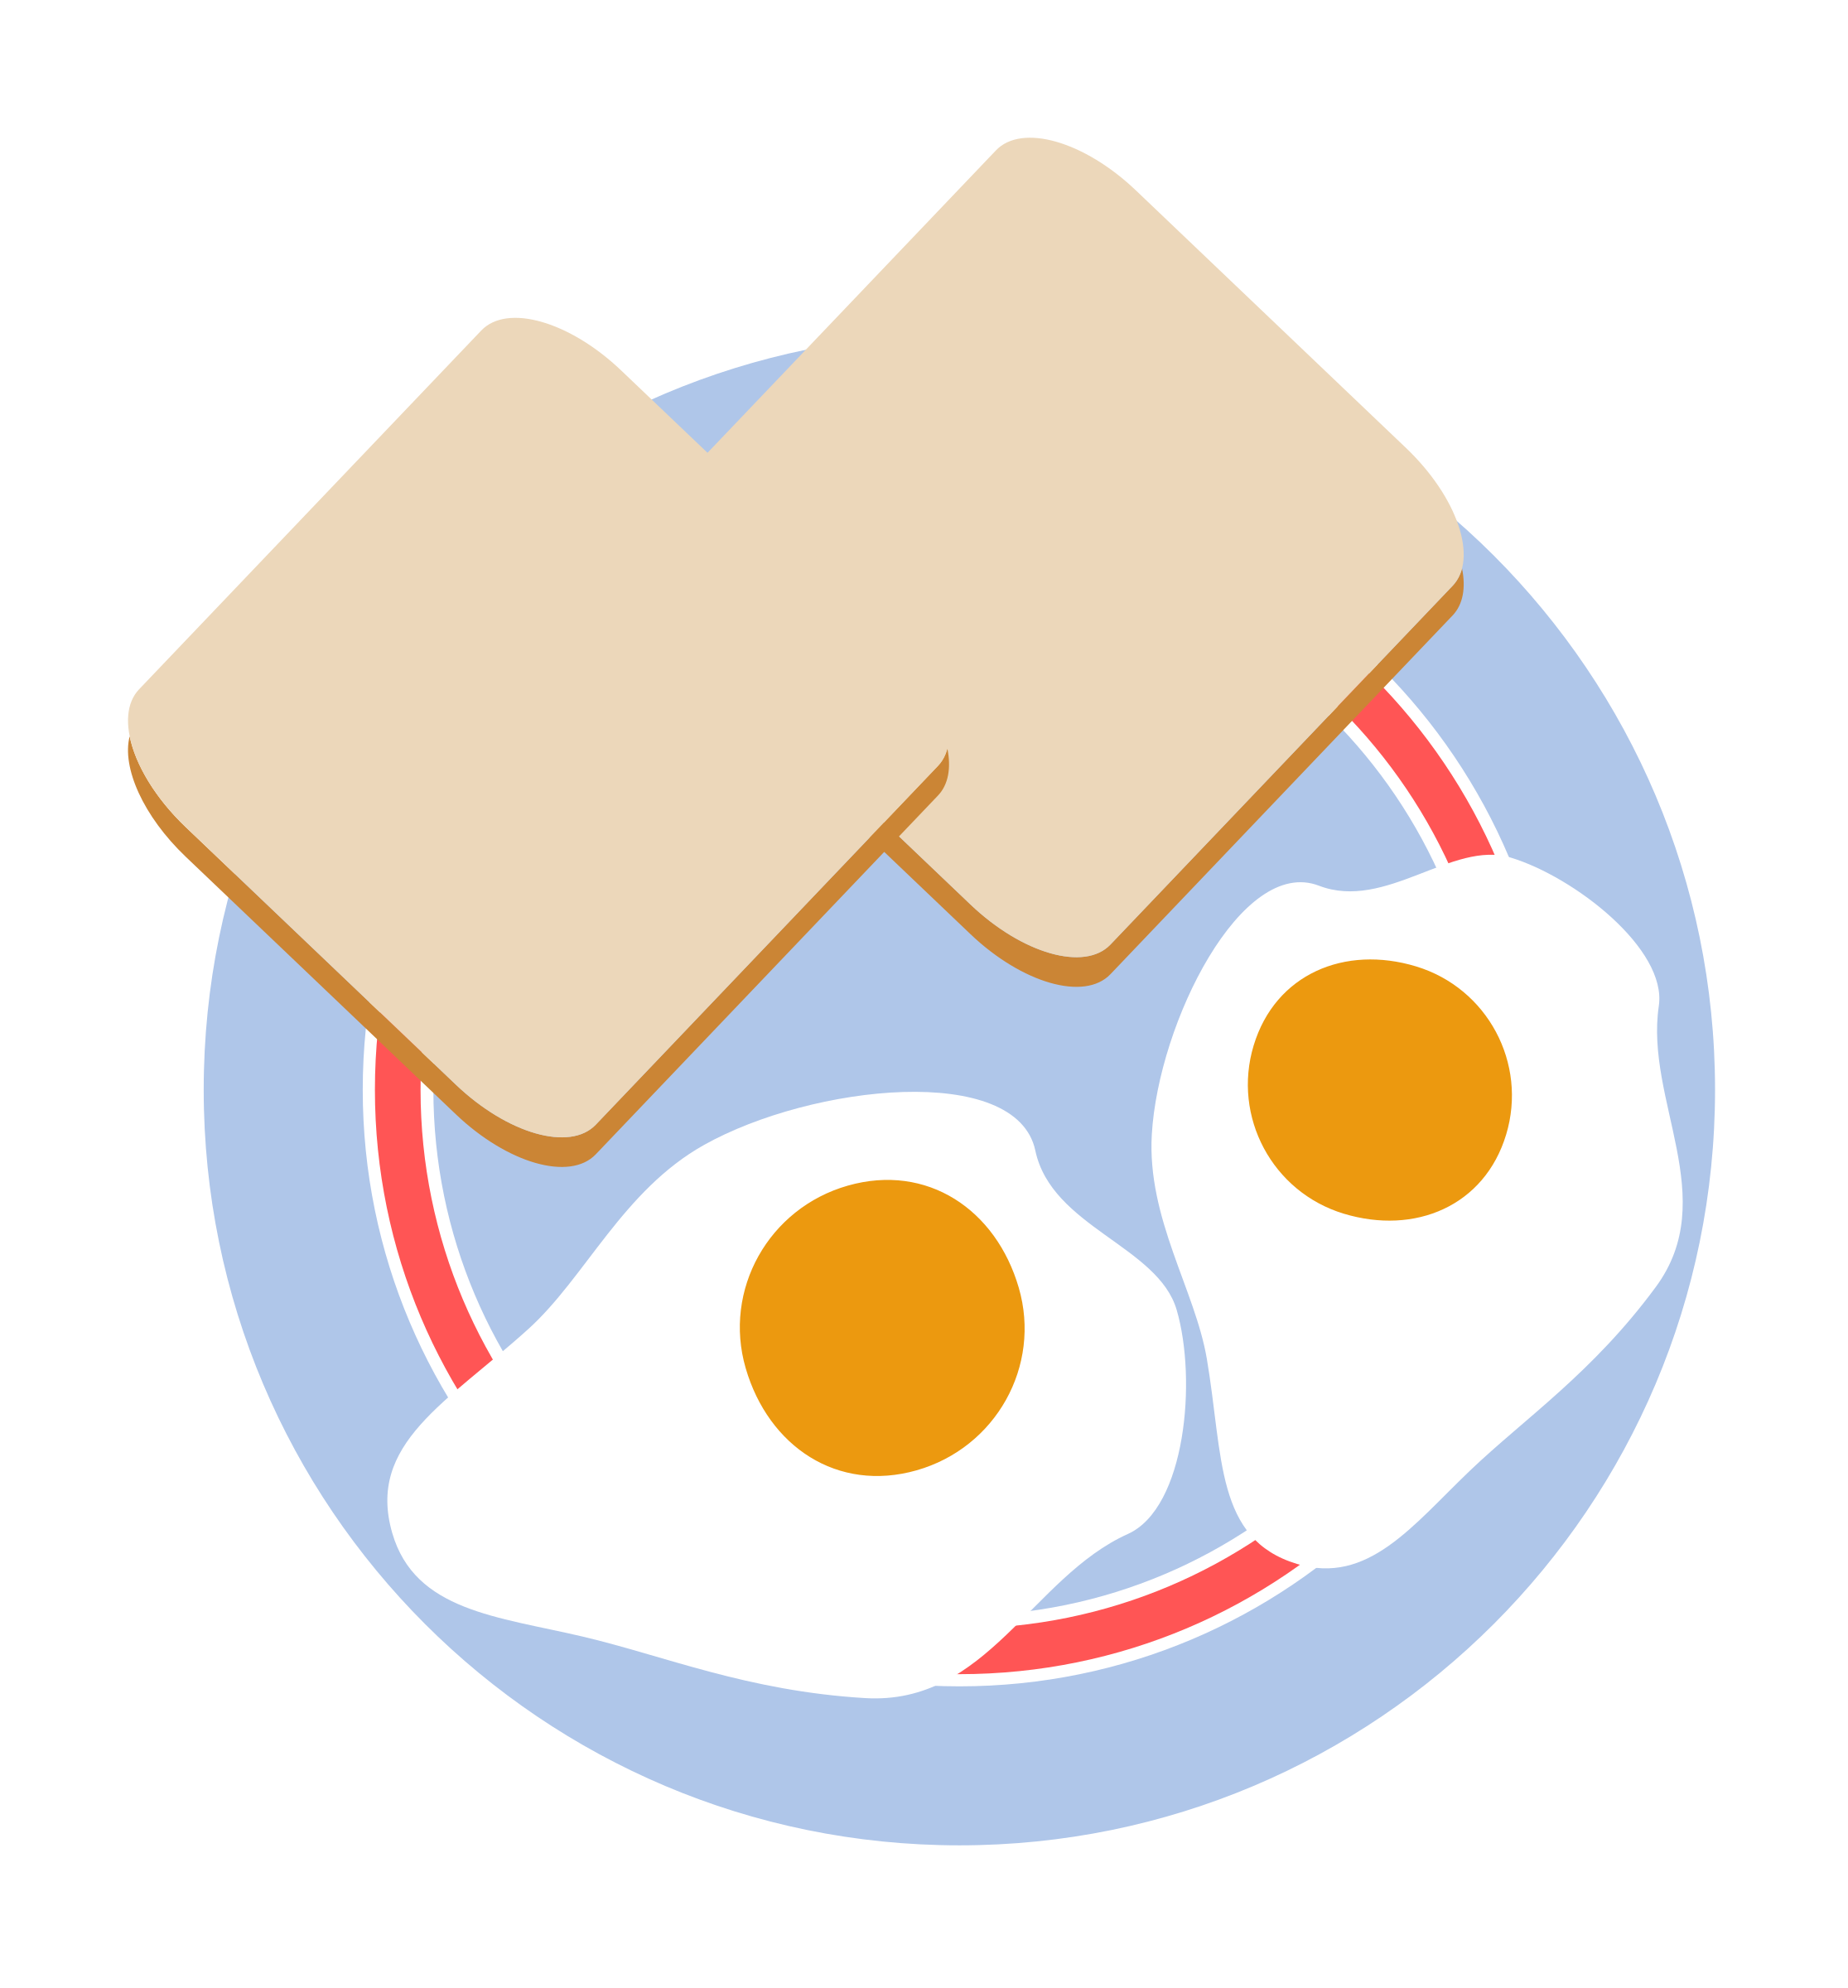 Circle clipart bread. Bull s eye eggs